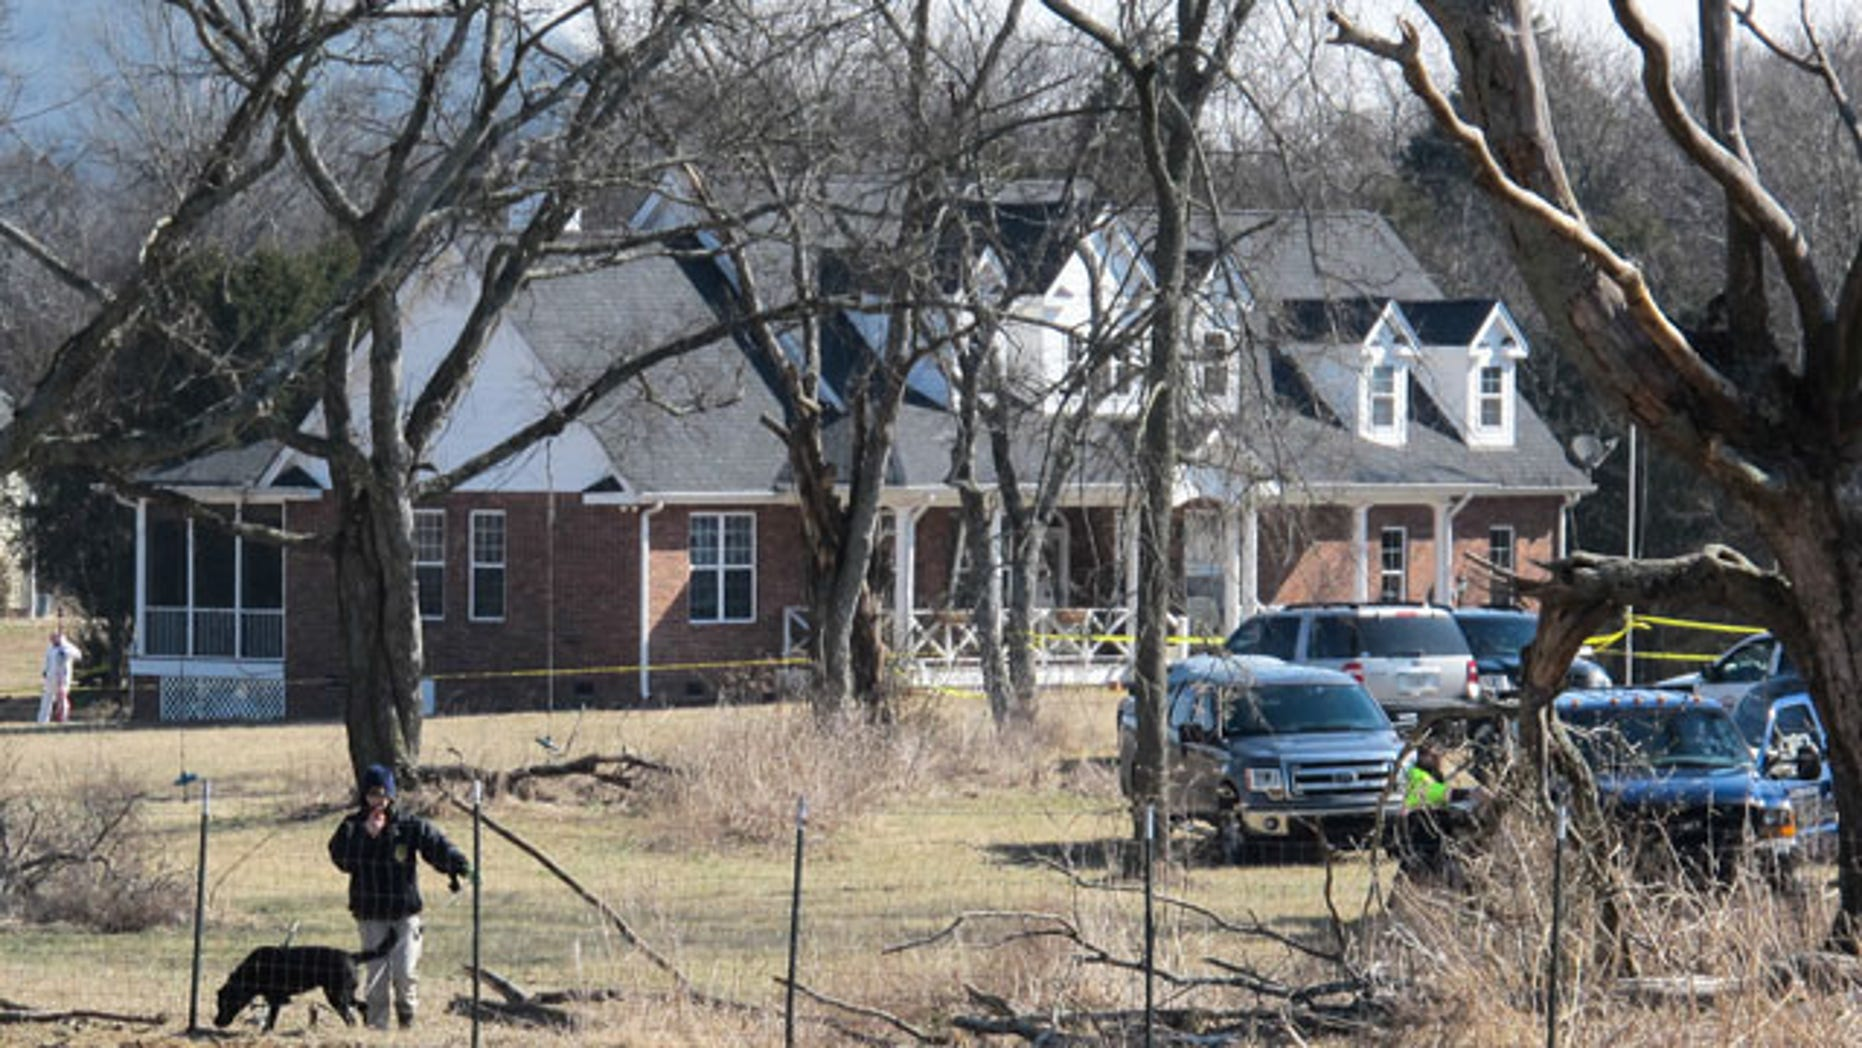 February 11, 2014: An officer and a dog inspect a fence near a home in Lebanon, Tenn. where police said a package exploded, killing a 74-year-old man and injuring a woman. (AP Photo/Lucas L. Johnson II)